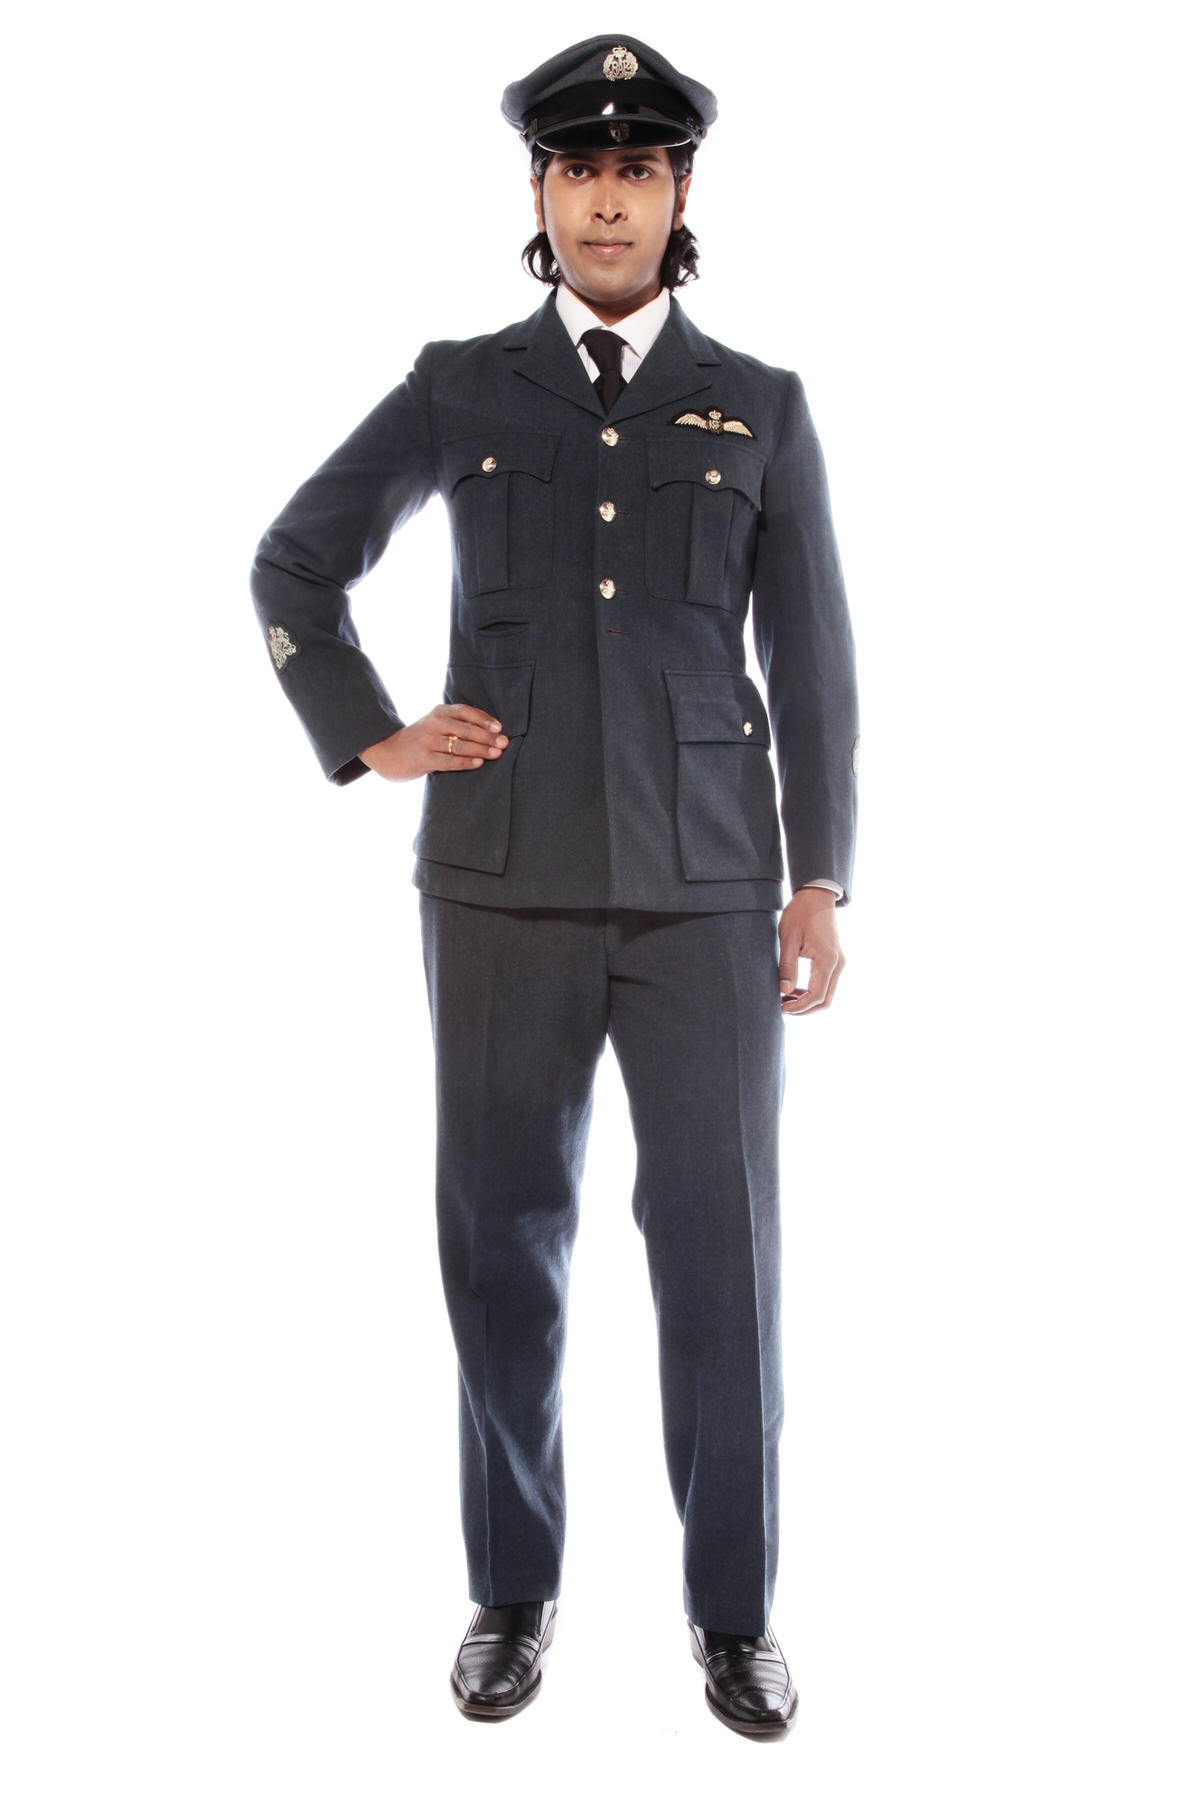 AIR FORCE PILOT COSTUME WITH PEAKED CAP